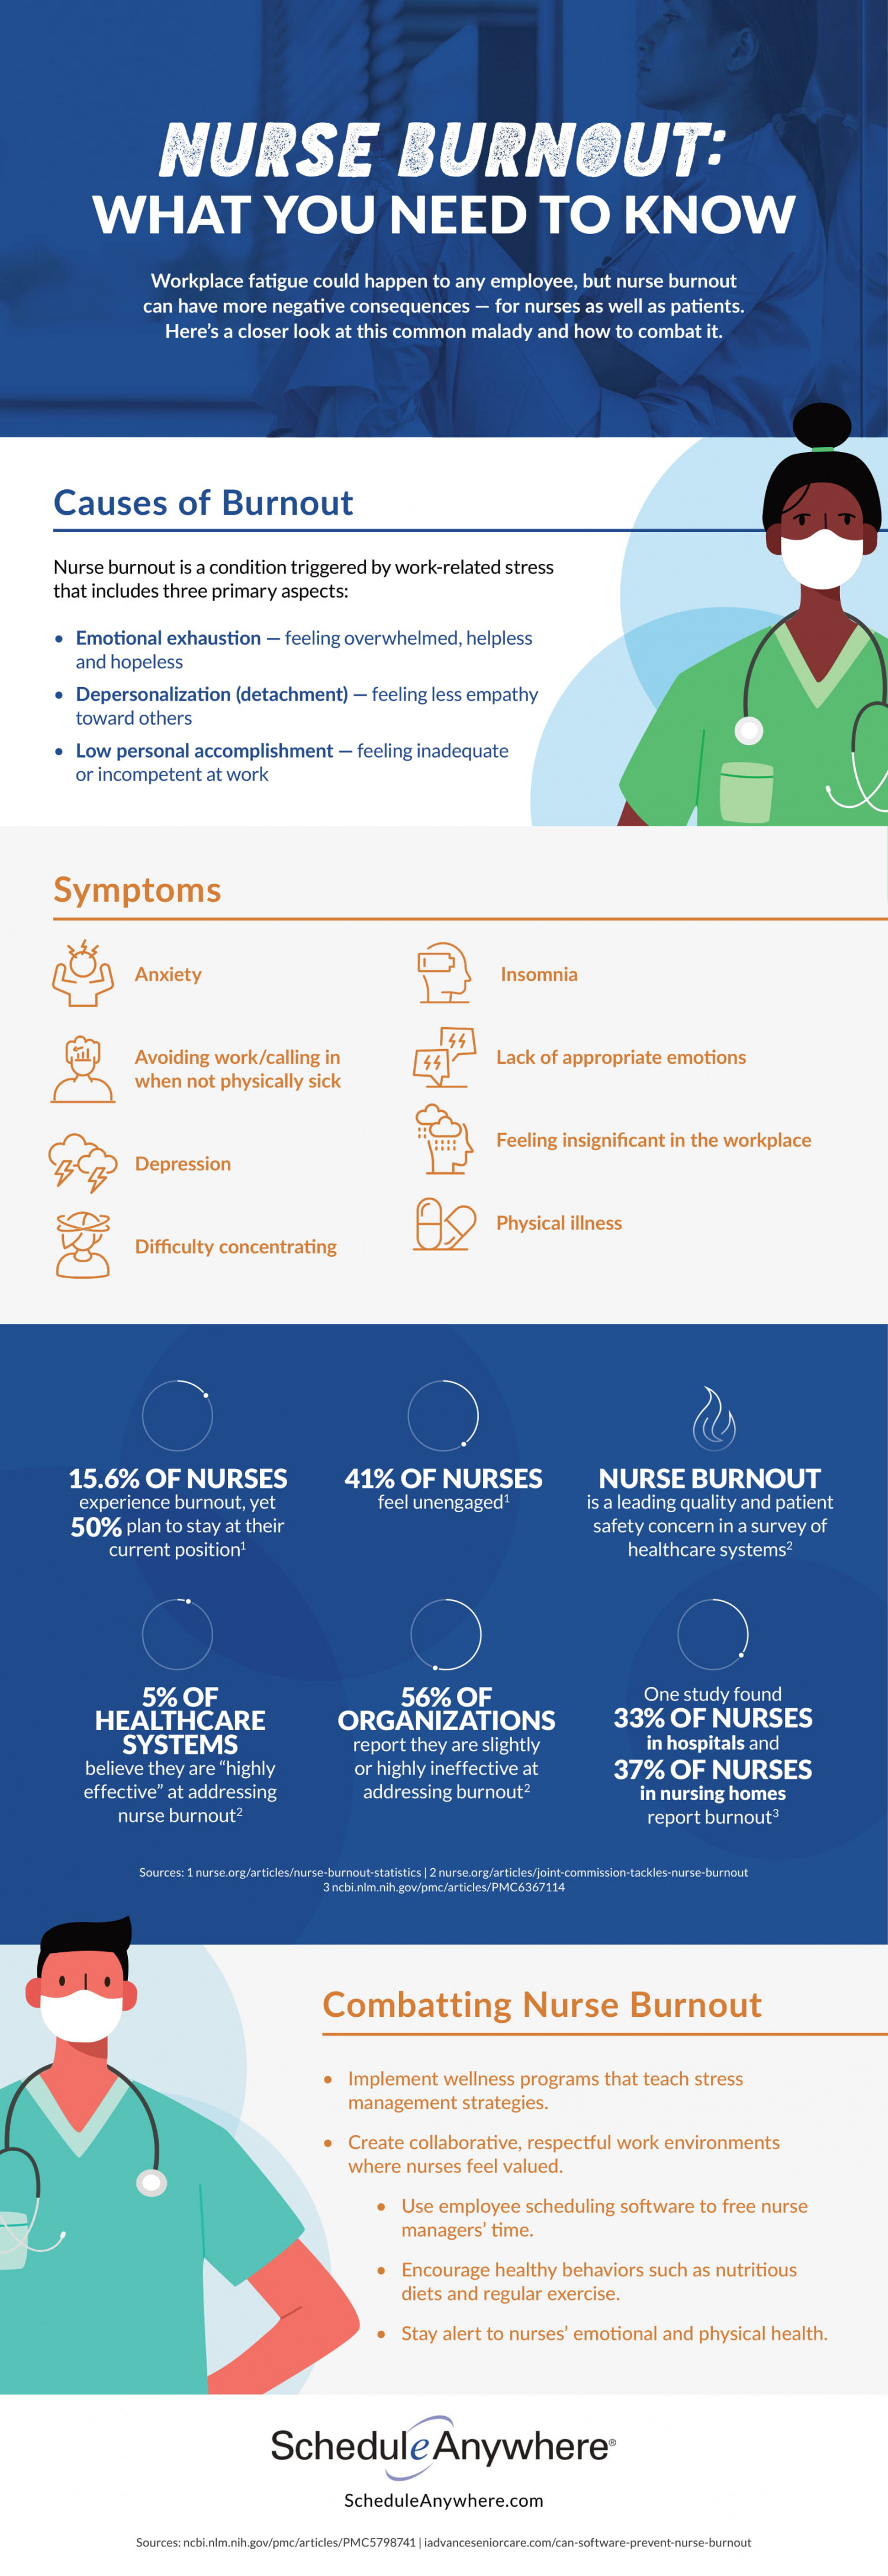 Nurse Burnout: What You Need To Know Infographic